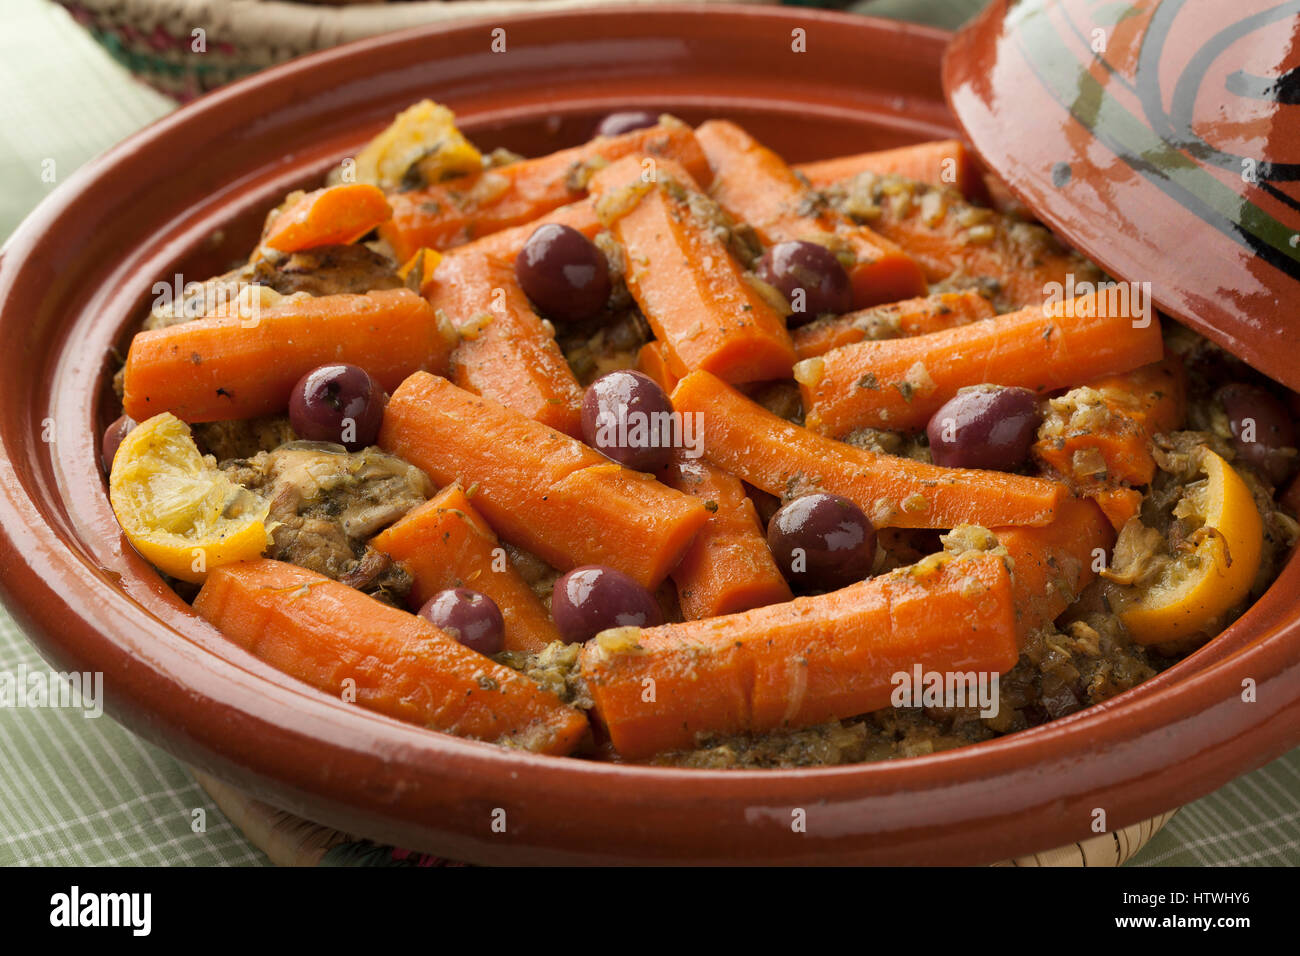 Moroccan tagine with chicken, carrots, olives and preserved lemon close up - Stock Image